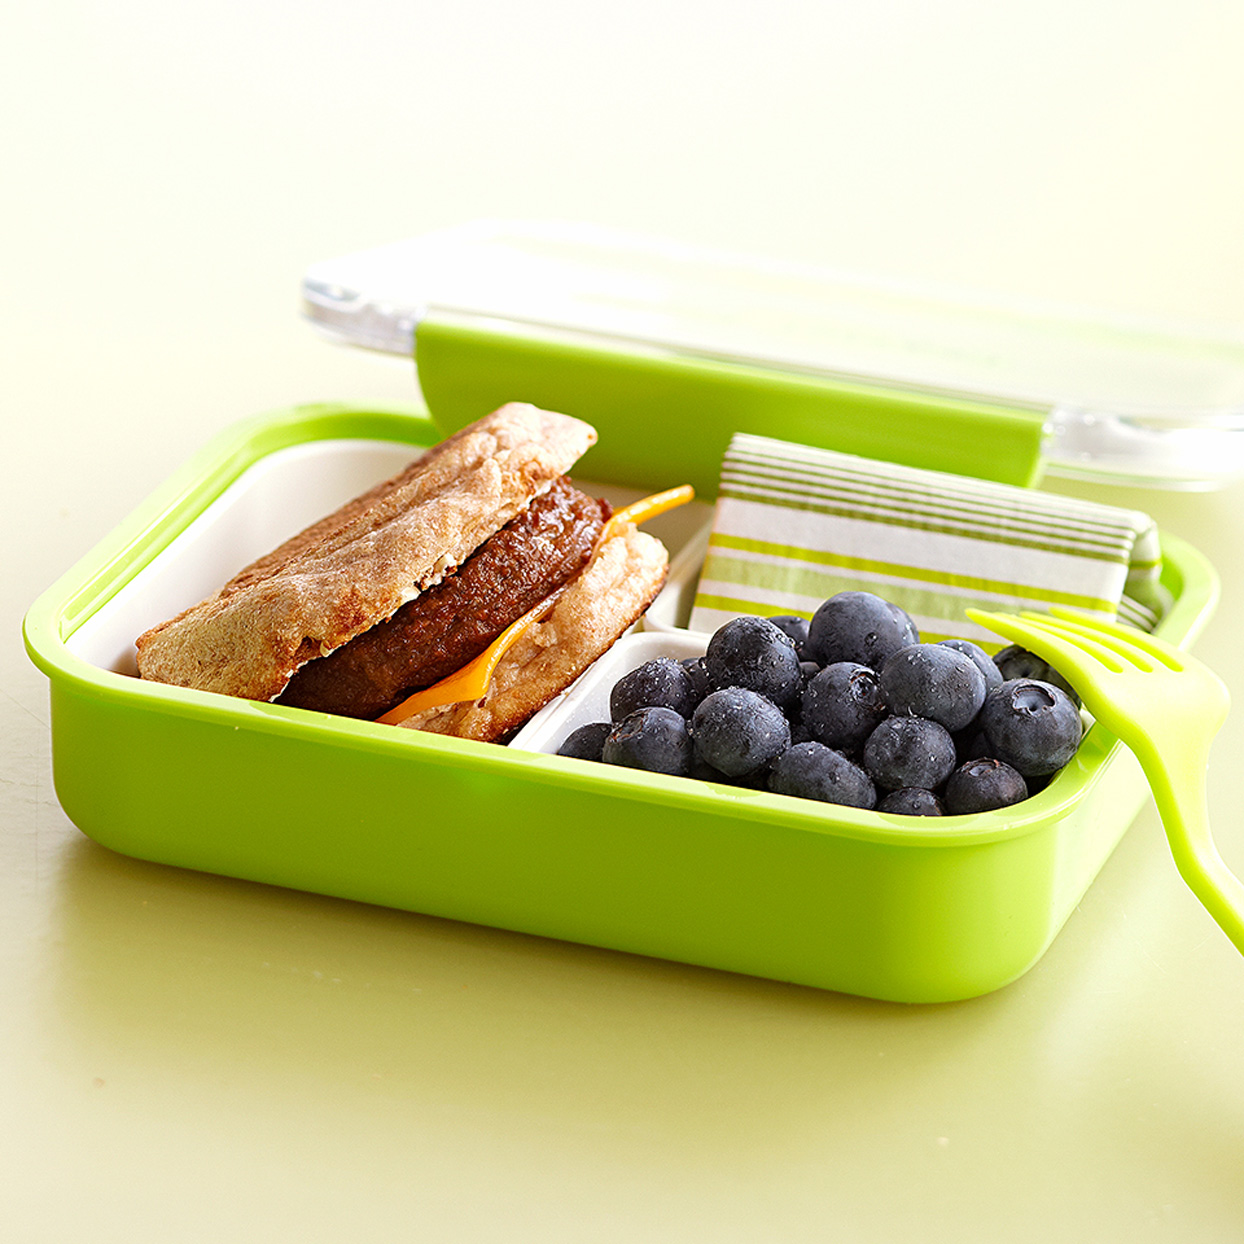 Sausage-&-Cheese-English-Muffin-Sandwich in lunchbox